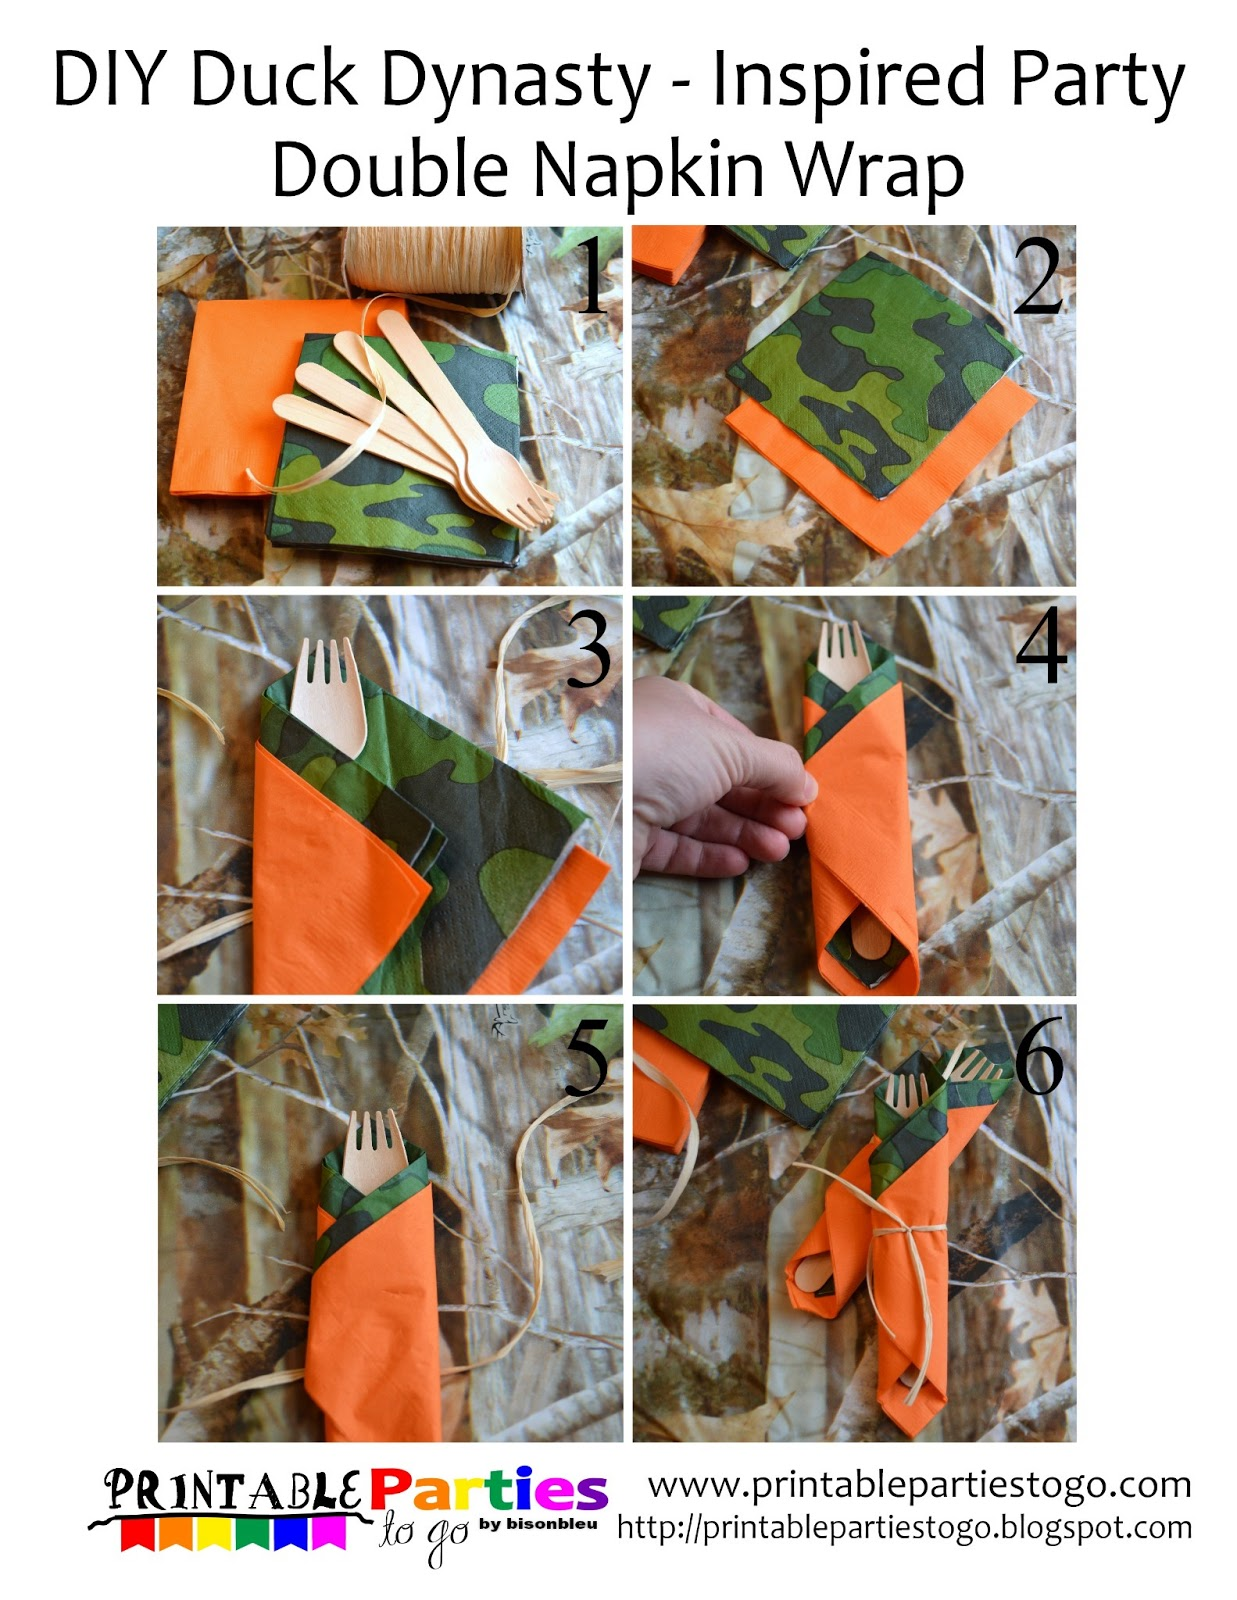 DIY Duck Dynasty Inspired Party Double Napkin Wraps